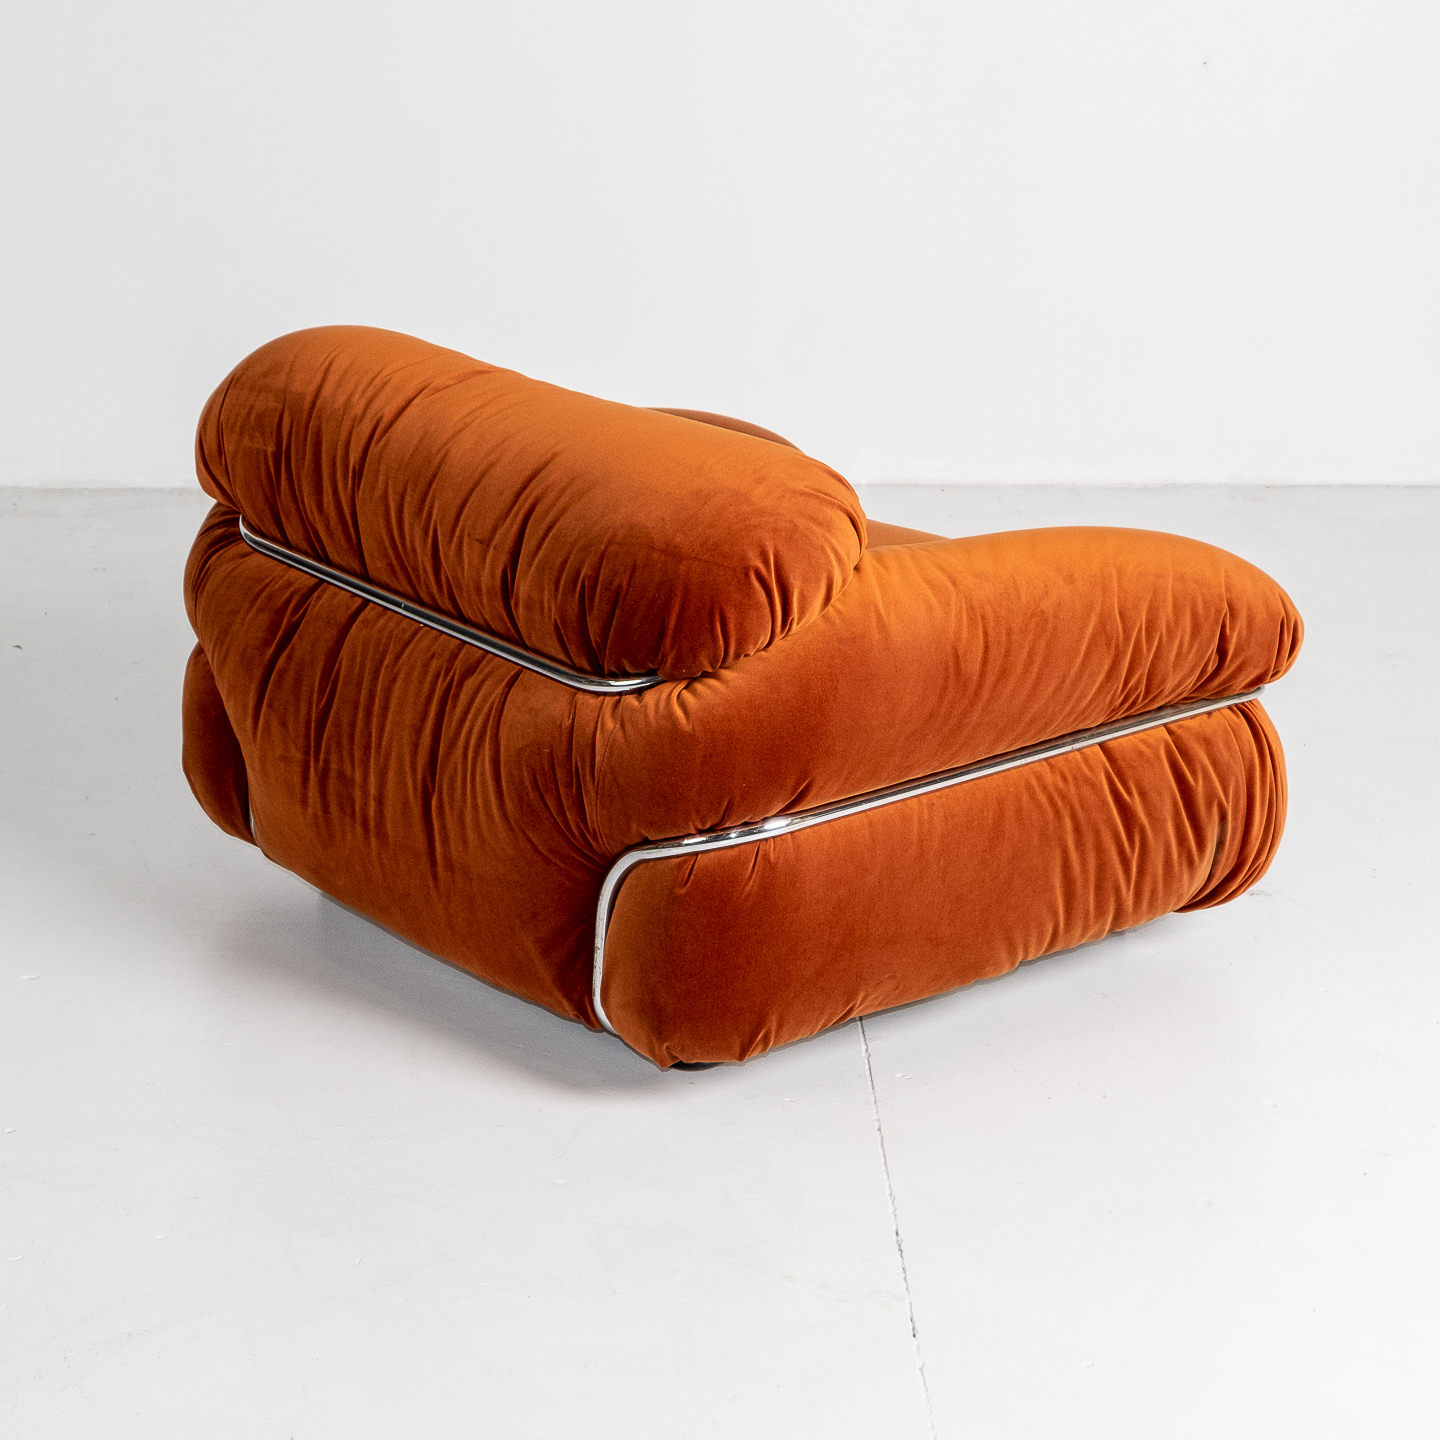 Model 595 Sesann Armchair By Gianfranco Frattini For Cassina, 1970s, Italy 20